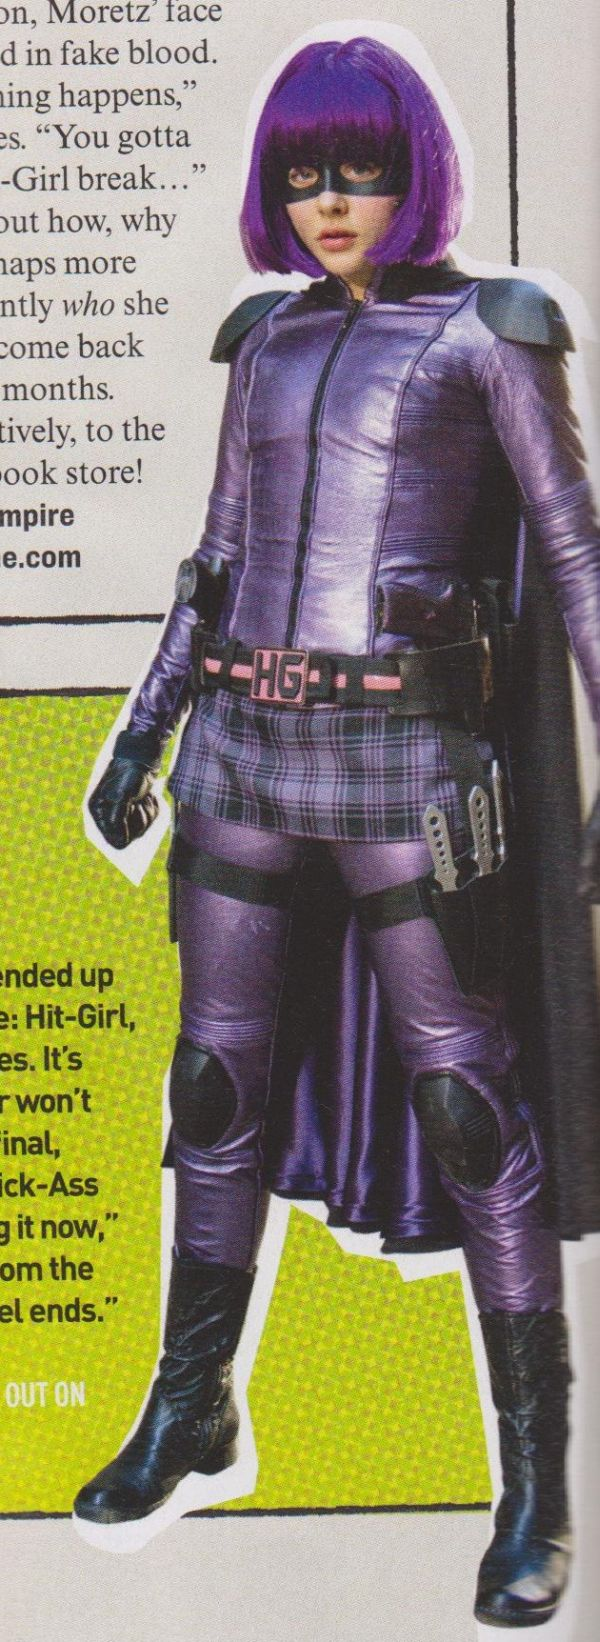 hit-girl-kick-ass-2-moretz2